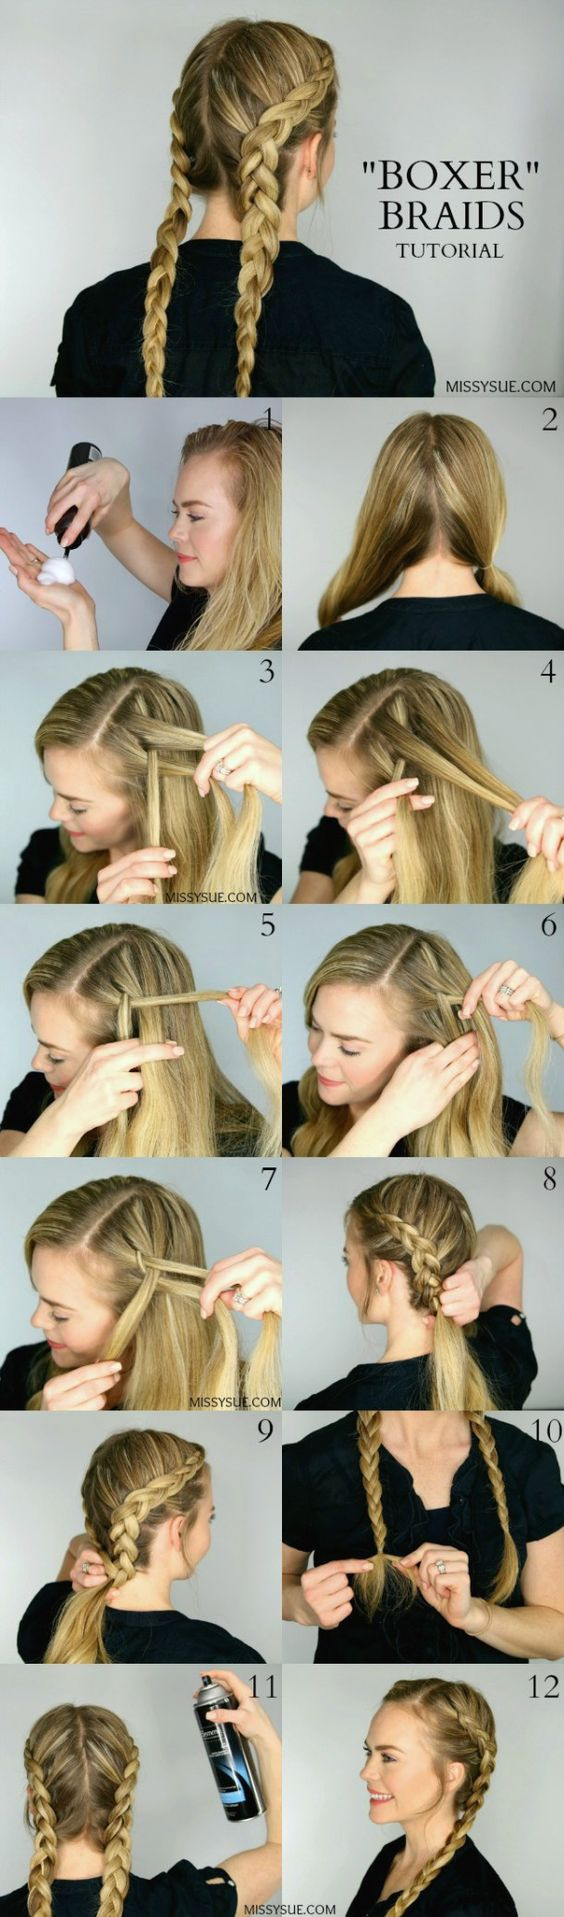 12 Braided Hair Tutorials For Spring 2017 Pretty Designs